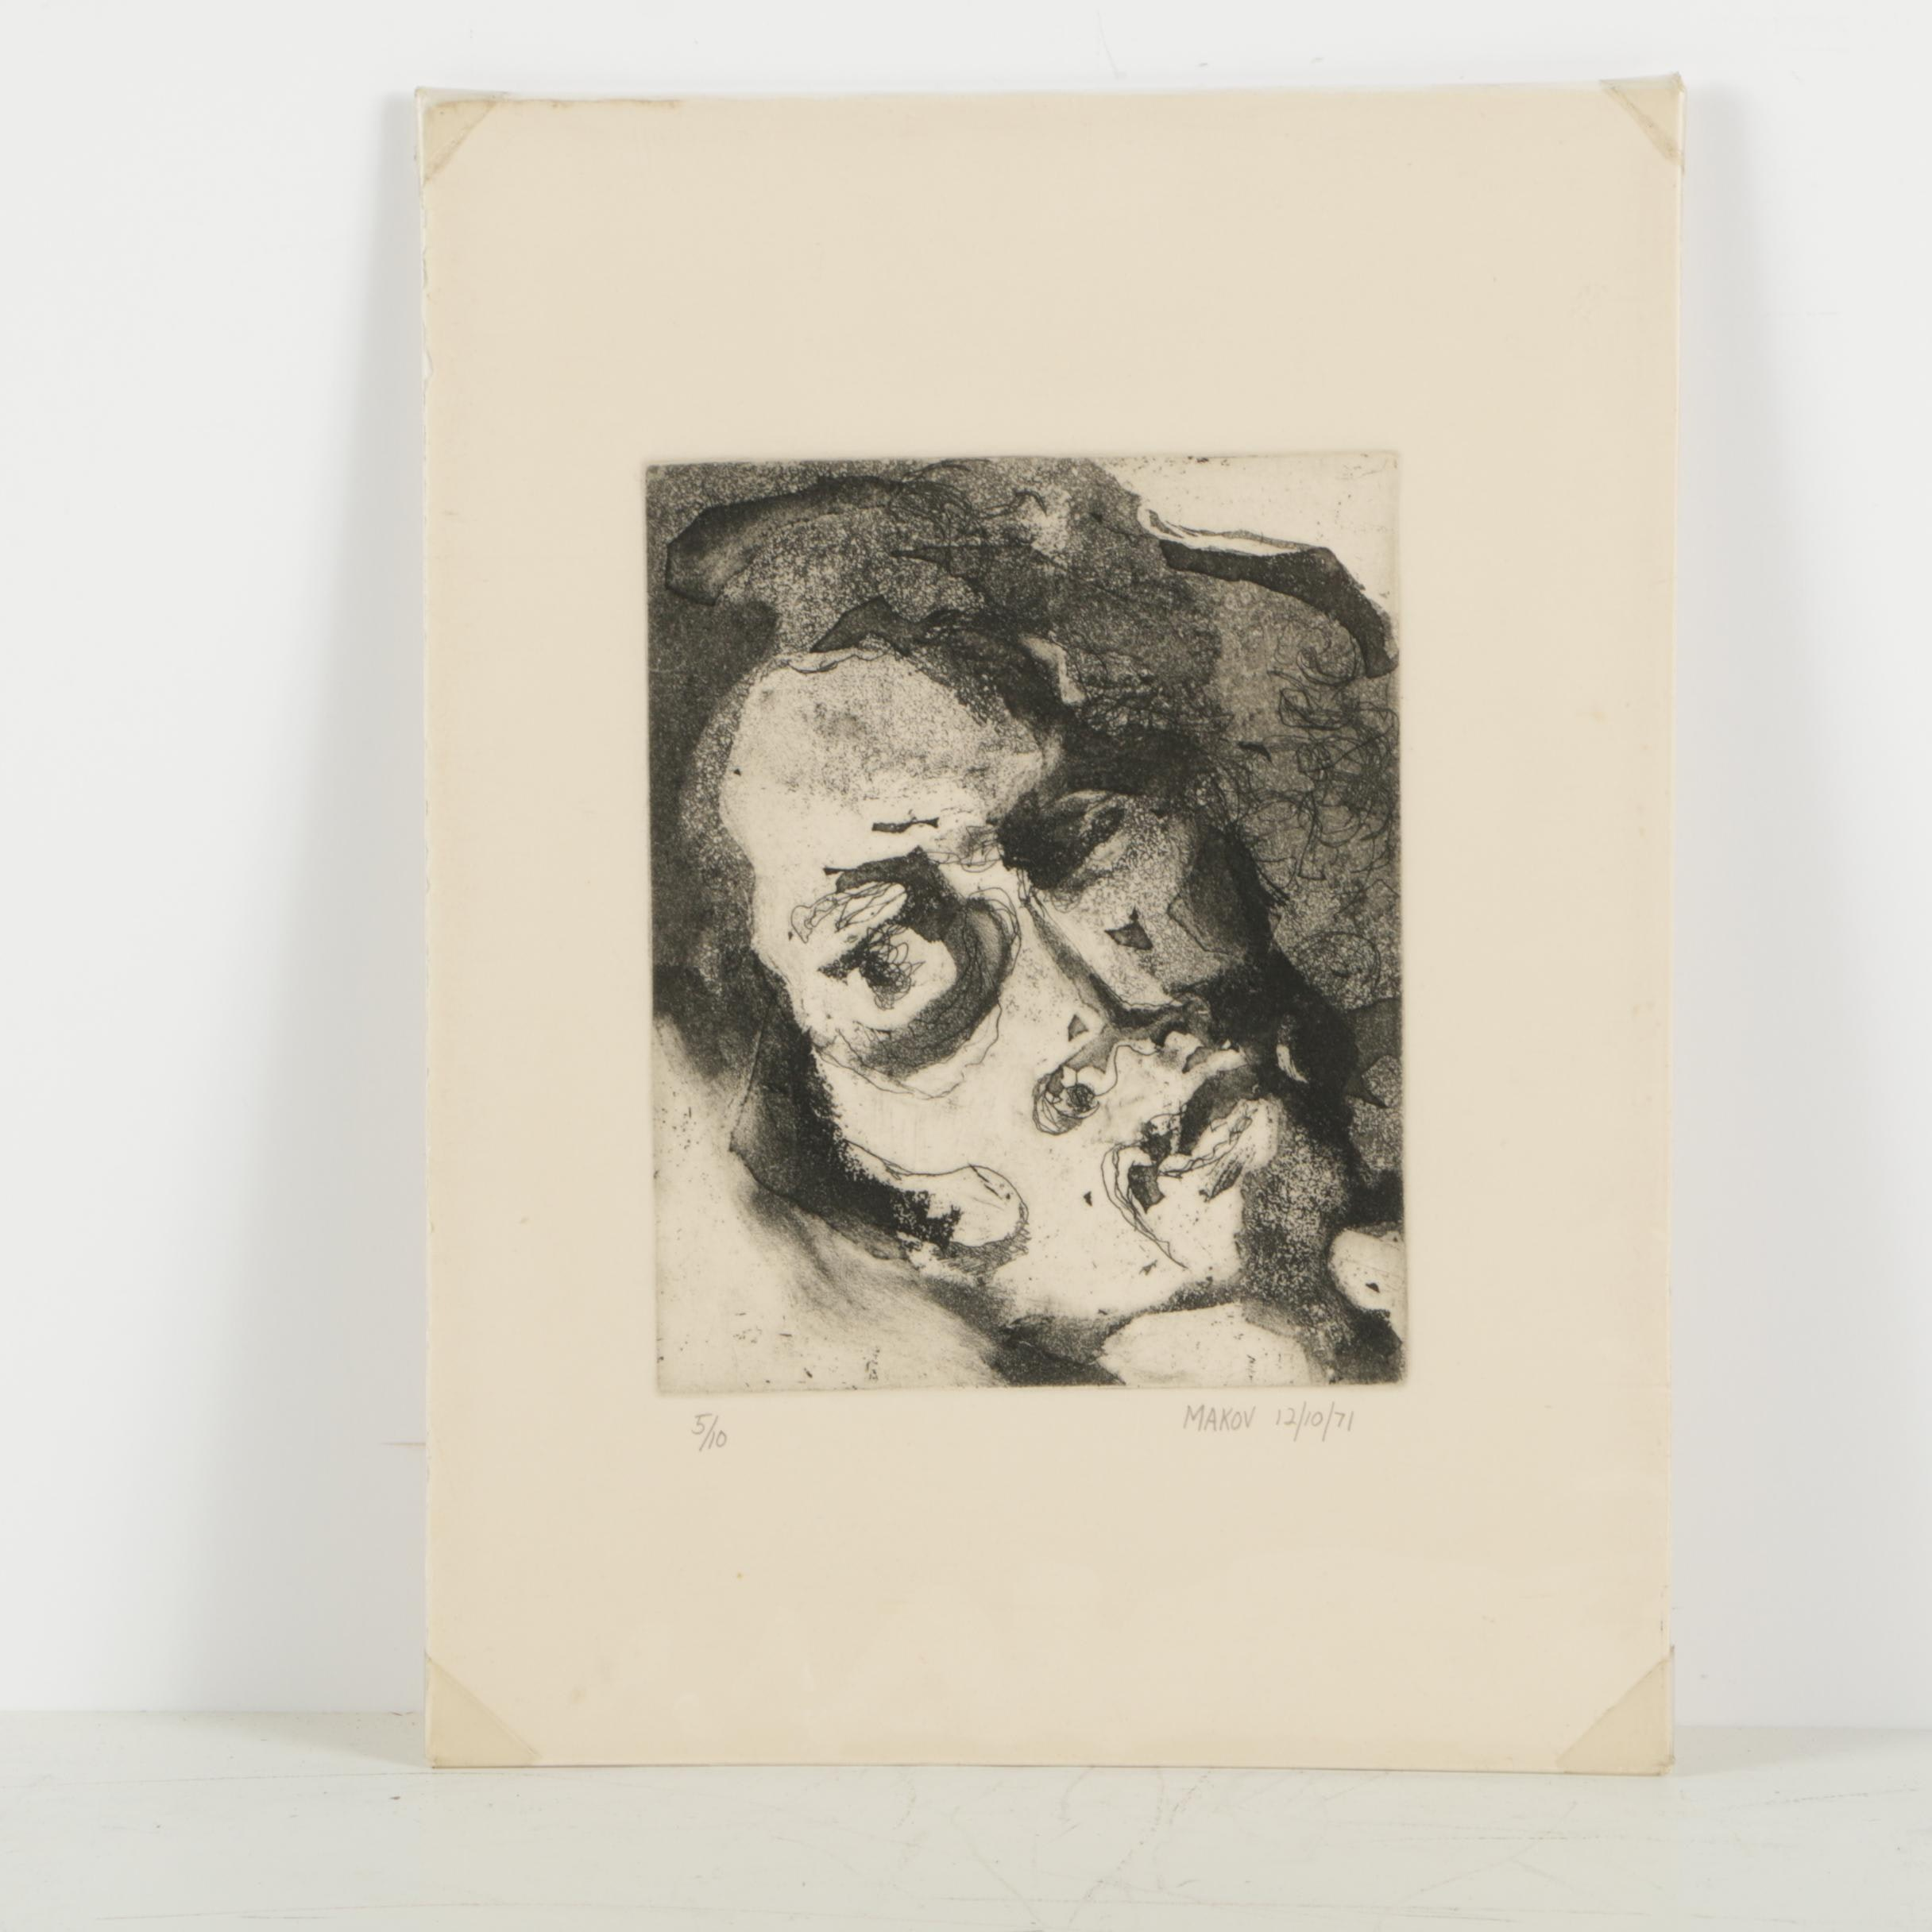 Makov Limited Edition Aquatint Etching on Paper